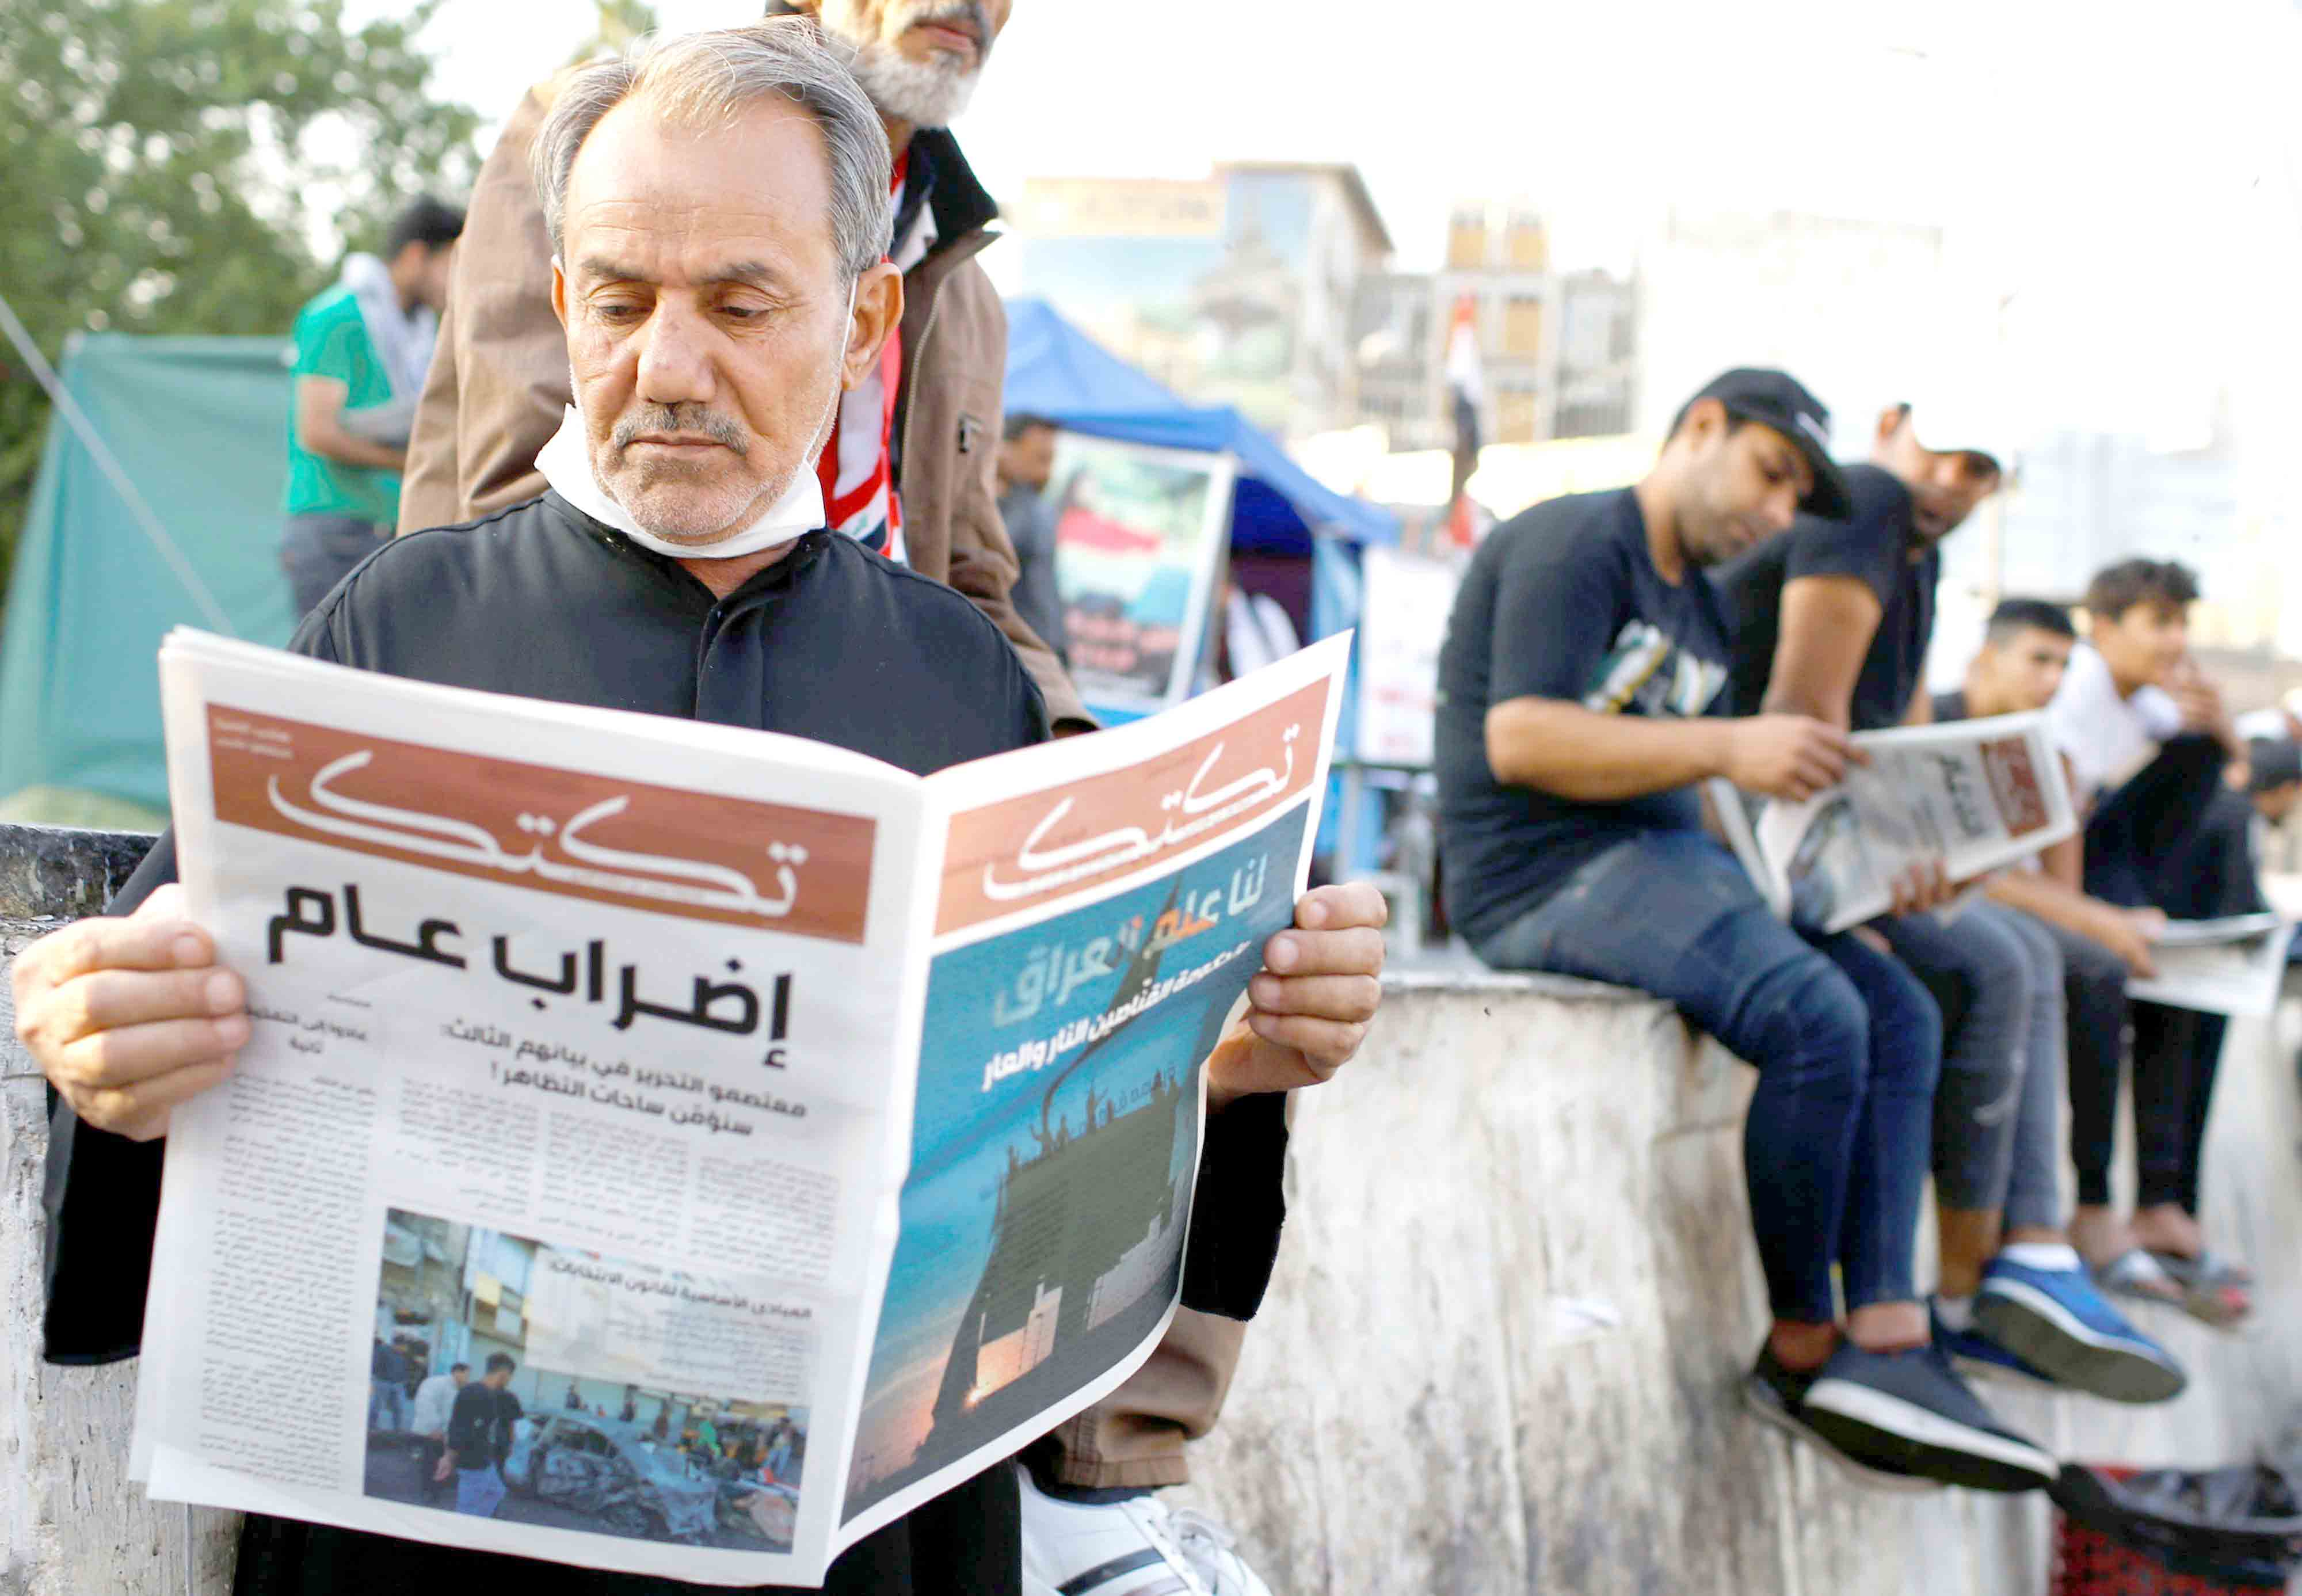 Bypassing the shutdown. An Iraqi demonstrator reads a copy of Tuktuk,  a newspaper that aims to be the voice of the largest grassroots protest, during anti-government protests in Baghdad, November 17.(Reuters)